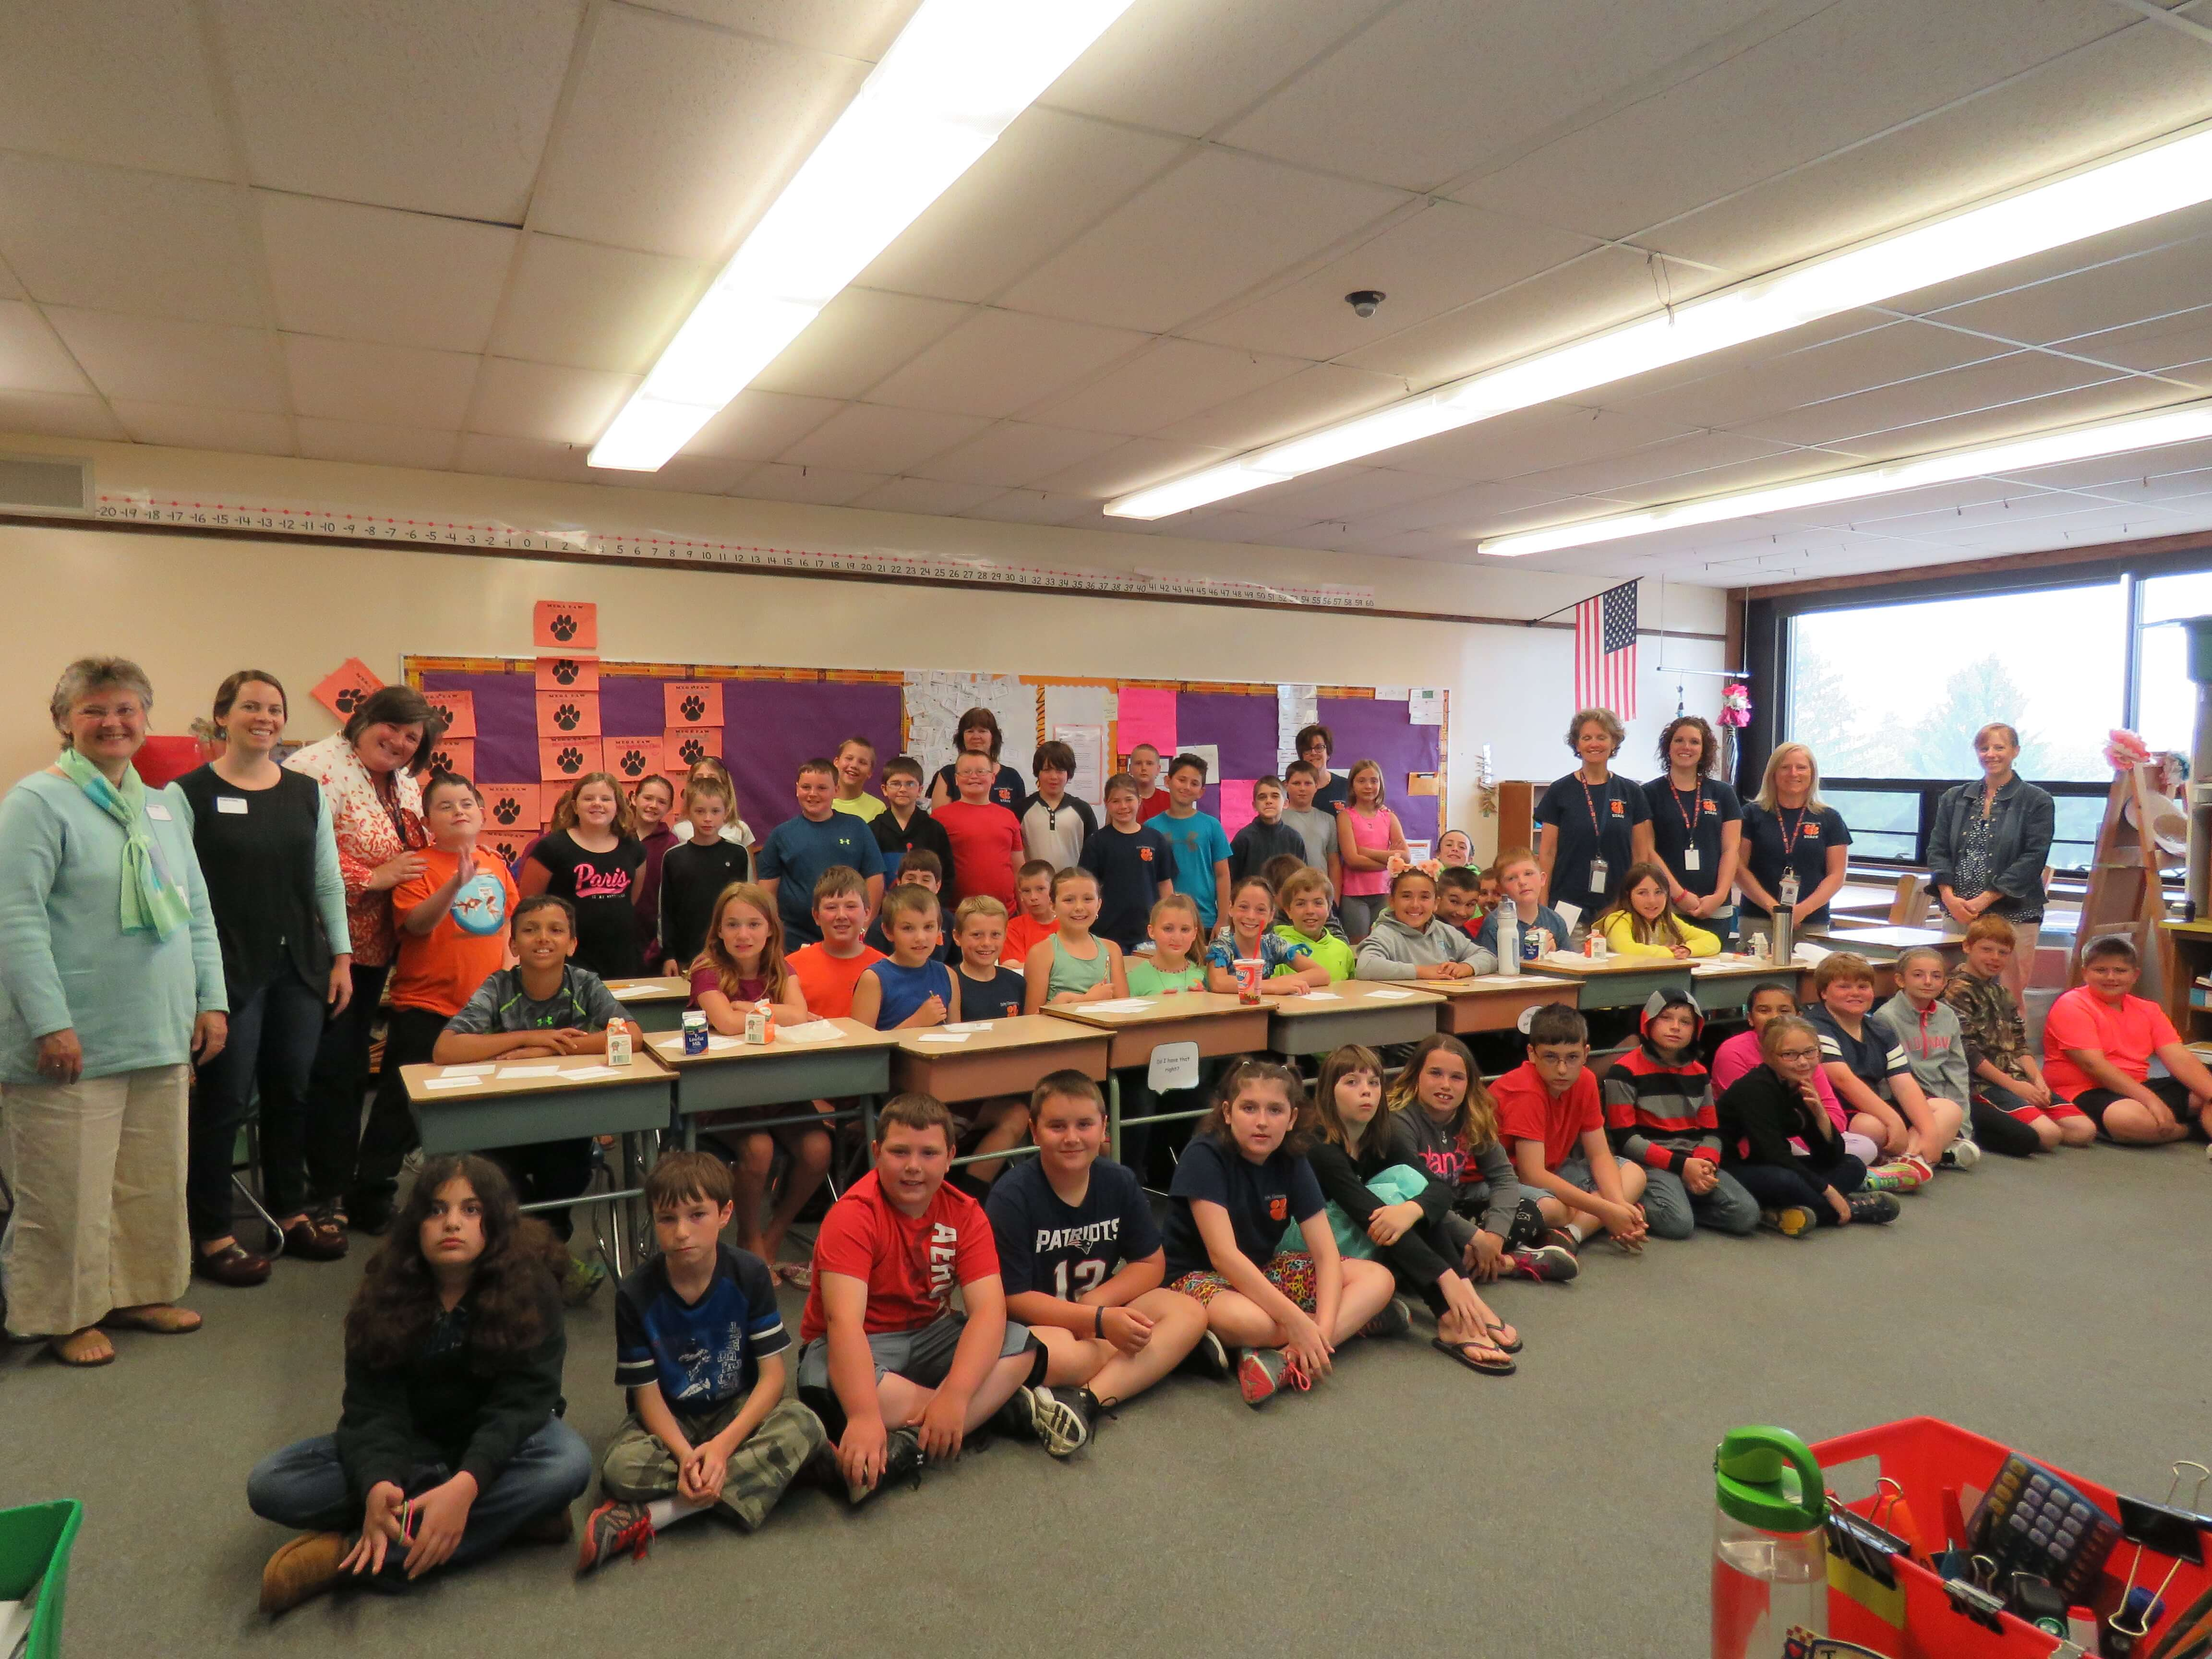 DES-Lallie-with-all-the-4th-graders-and-teachers-2.jpg